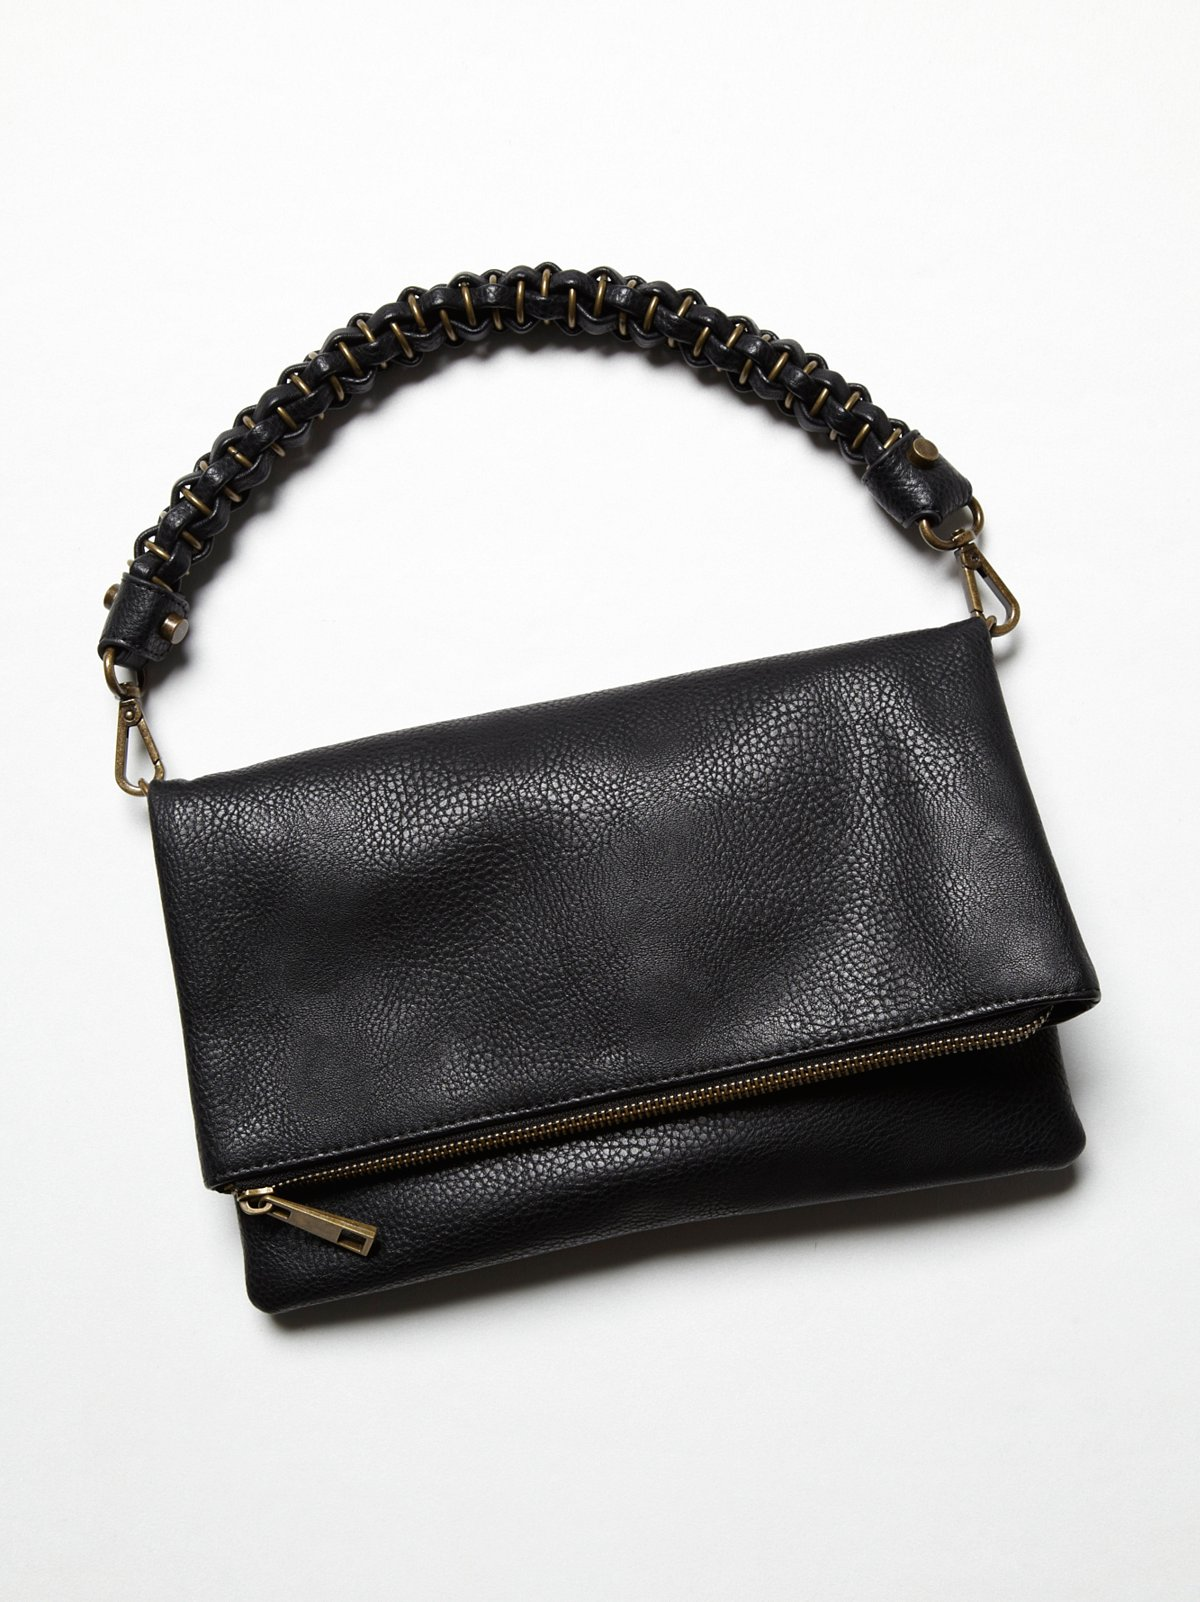 Vegan Foldover Clutch